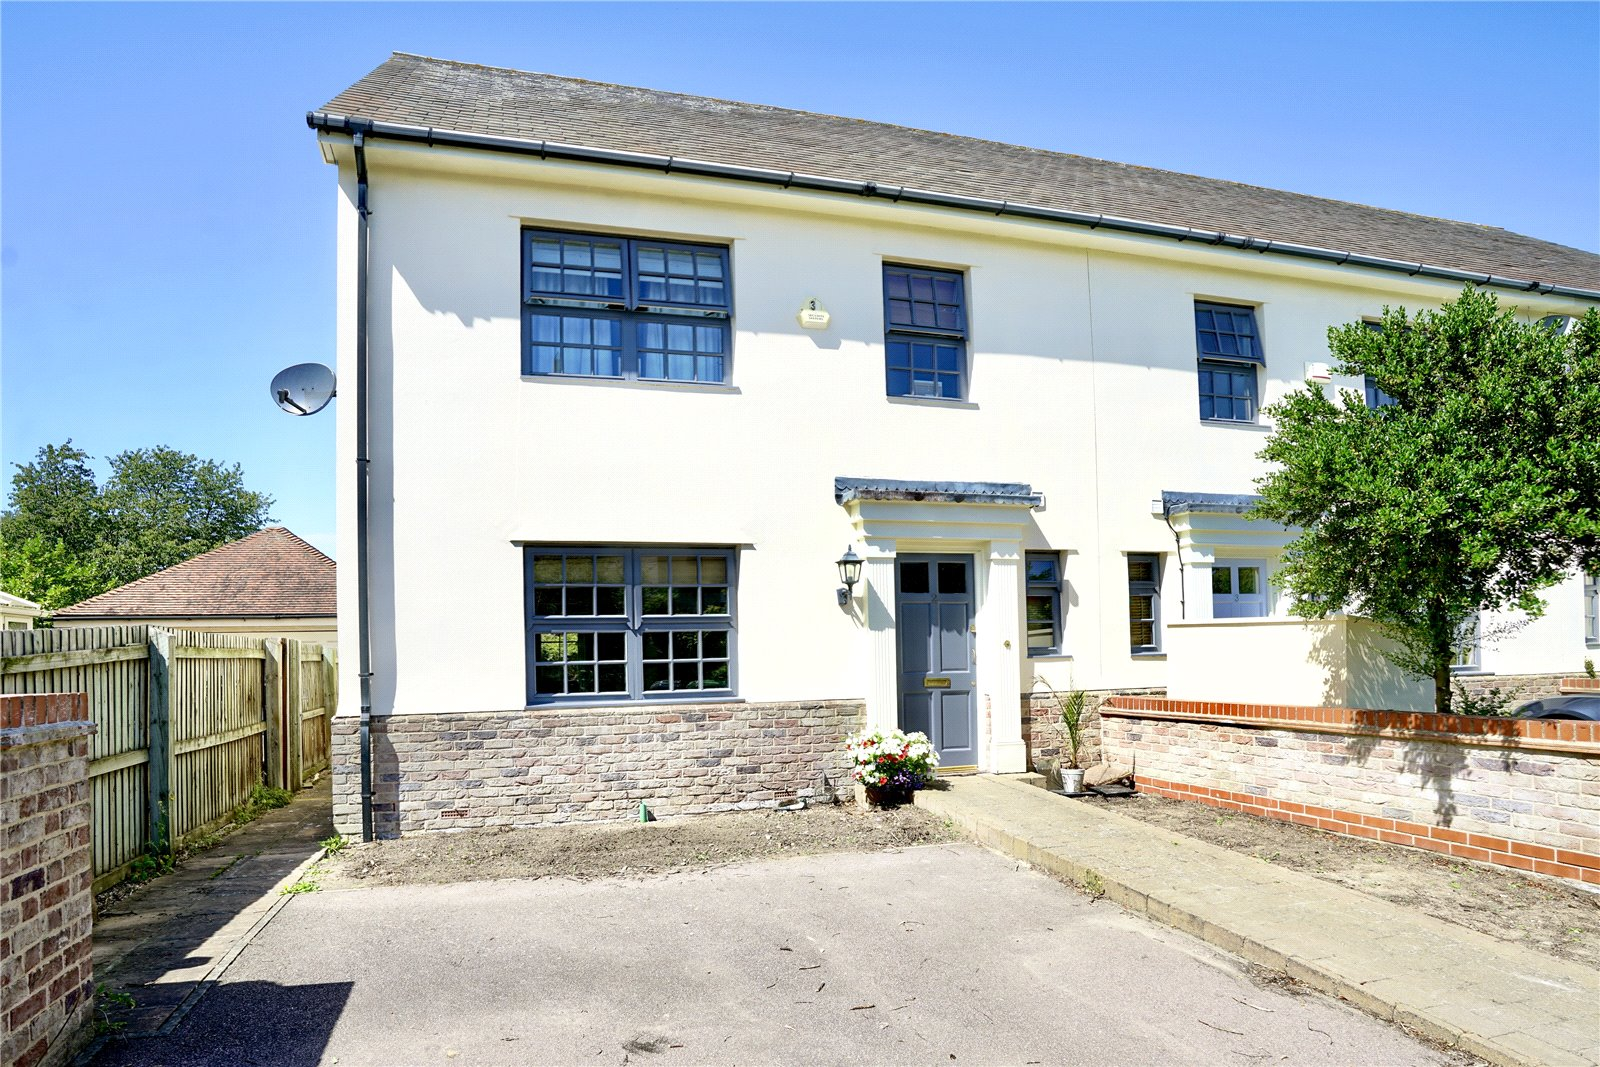 4 bed house for sale in Brampton, PE28 4RZ  - Property Image 1